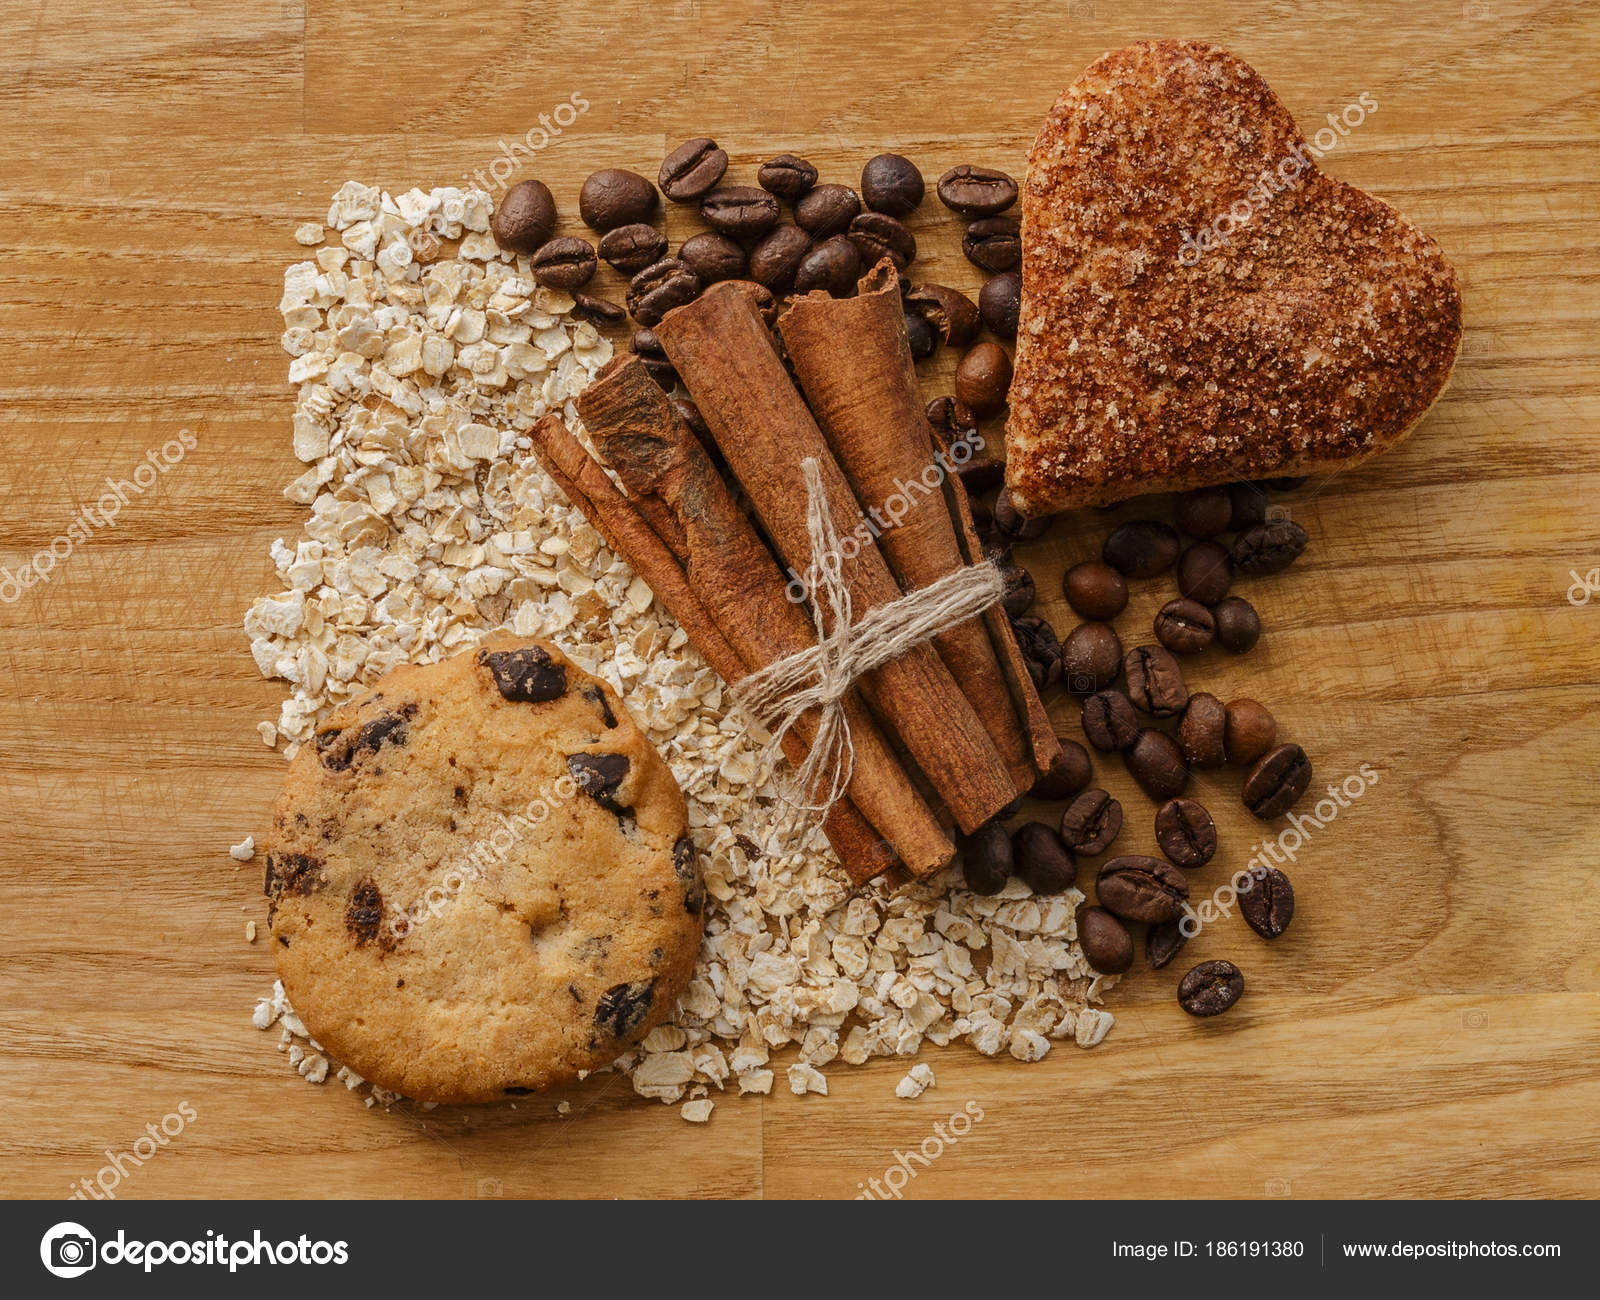 Oatmeal And Coffee Beans And Cinnamon Sticks And Cinnamon Cookie